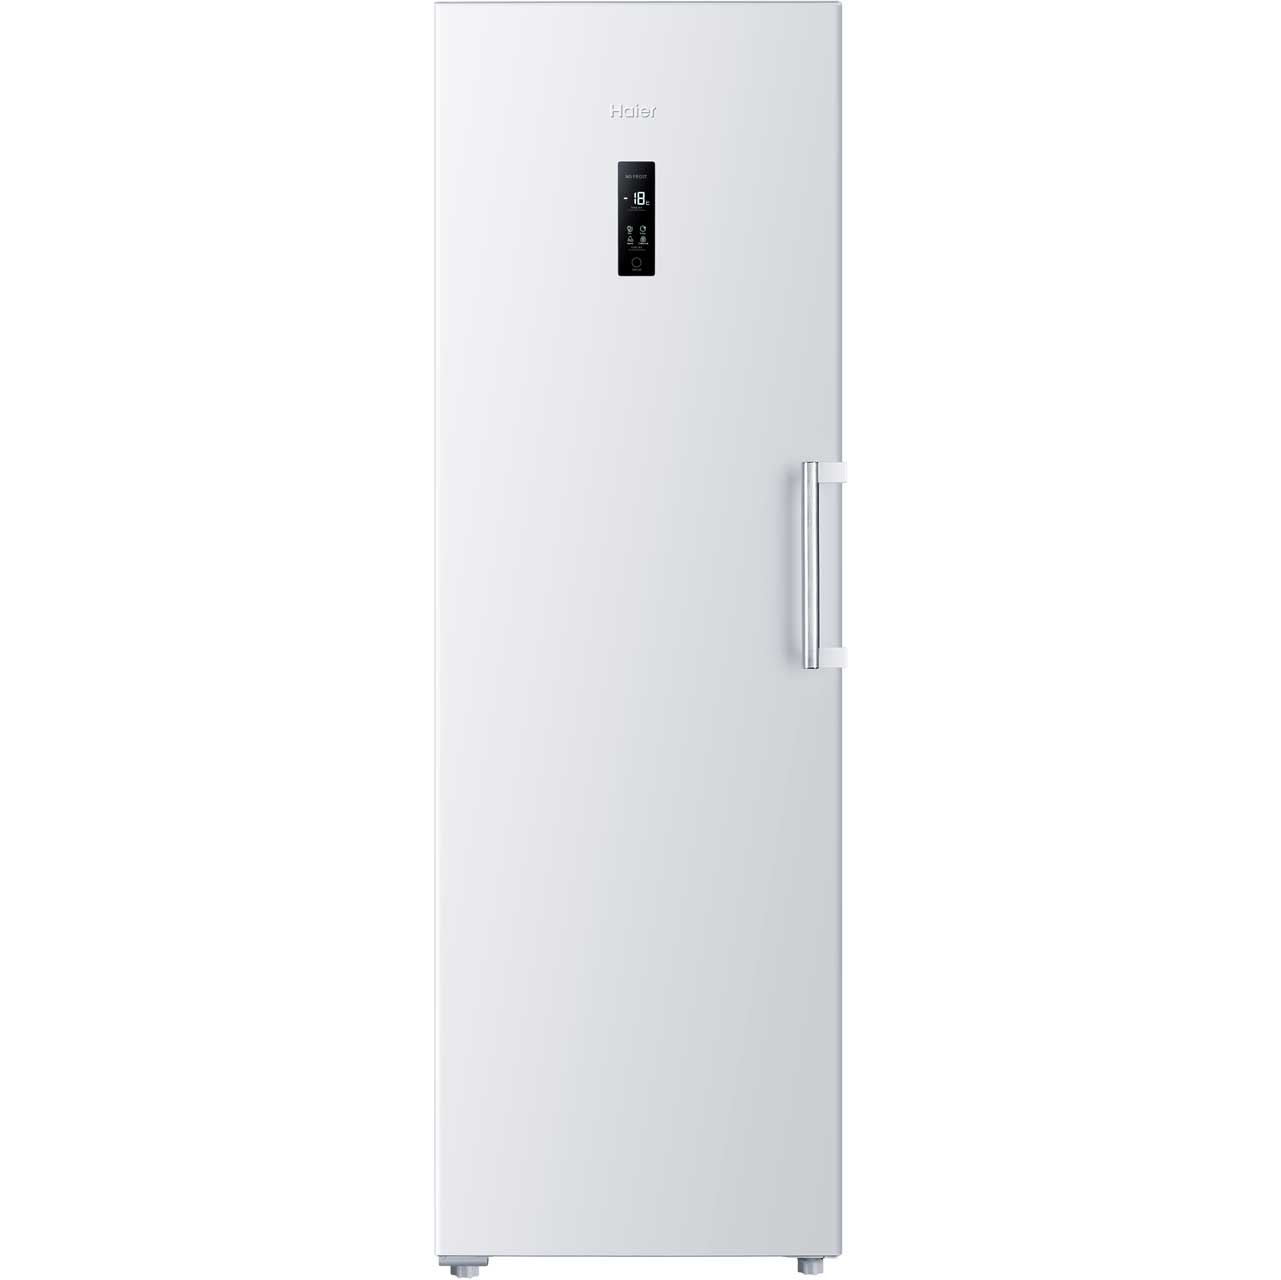 Haier HF255WAA Free Standing Freezer Frost Free in White